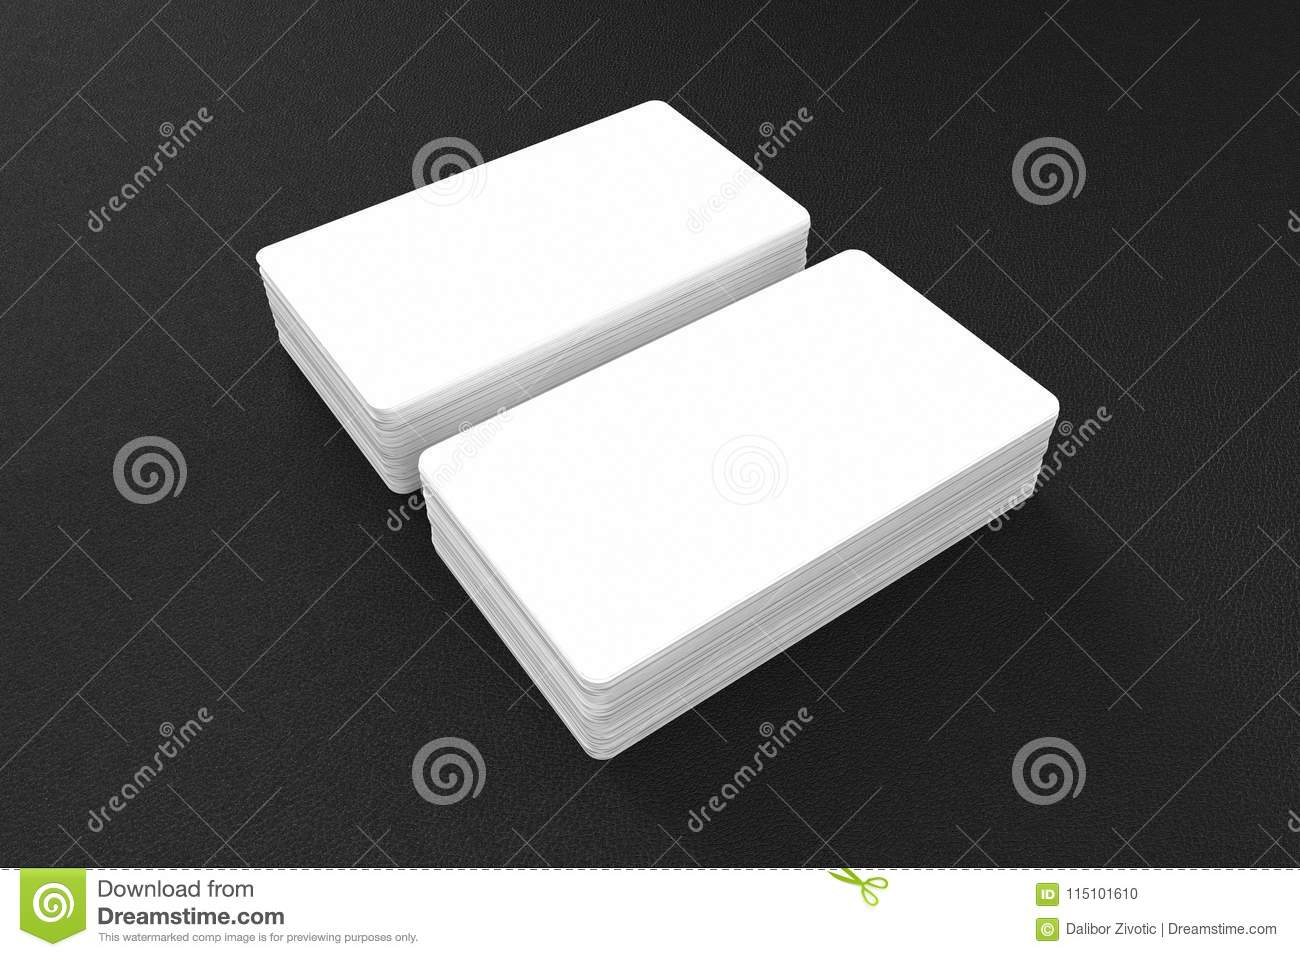 Business cards blank mockup template 3d illustration stock 3d render of business cards blank mockup template 3d illustration cheaphphosting Gallery